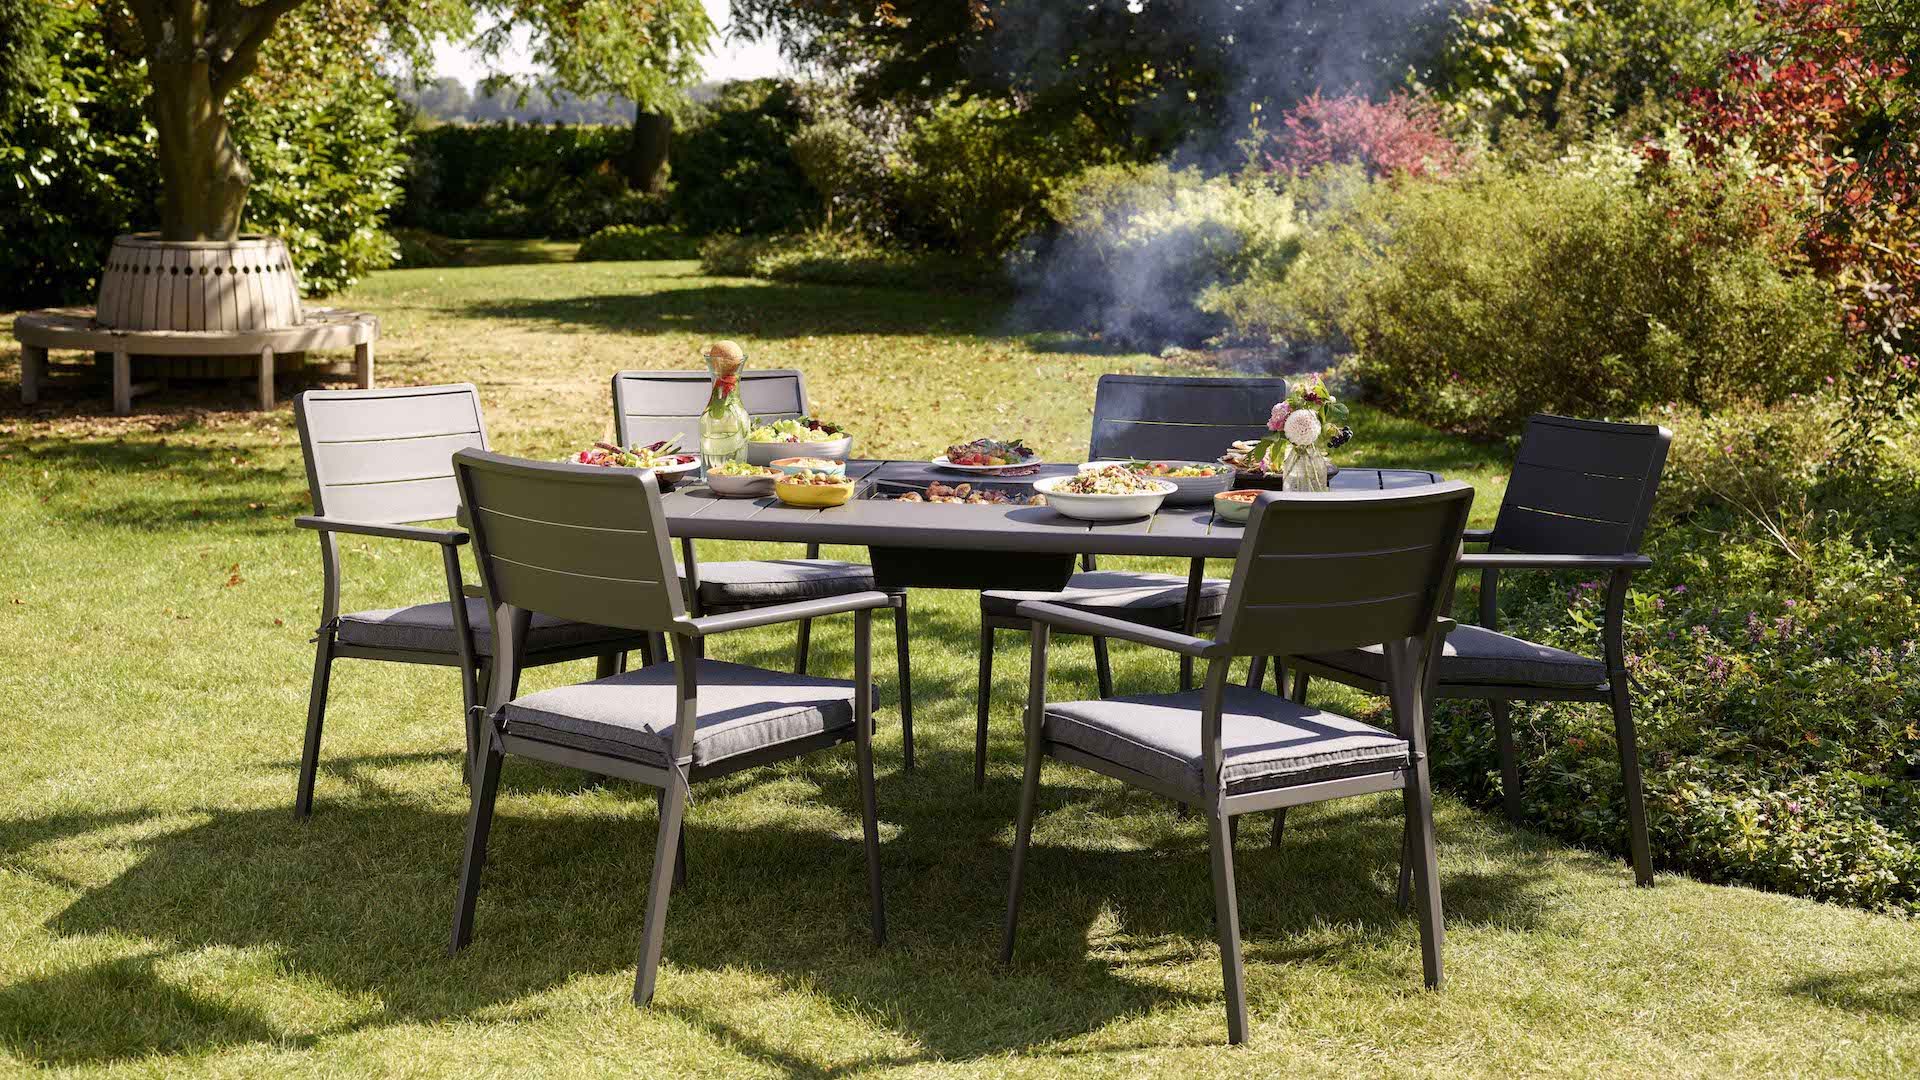 hartman jamie oliver caraway 6 seat firepit garden set. Black Bedroom Furniture Sets. Home Design Ideas